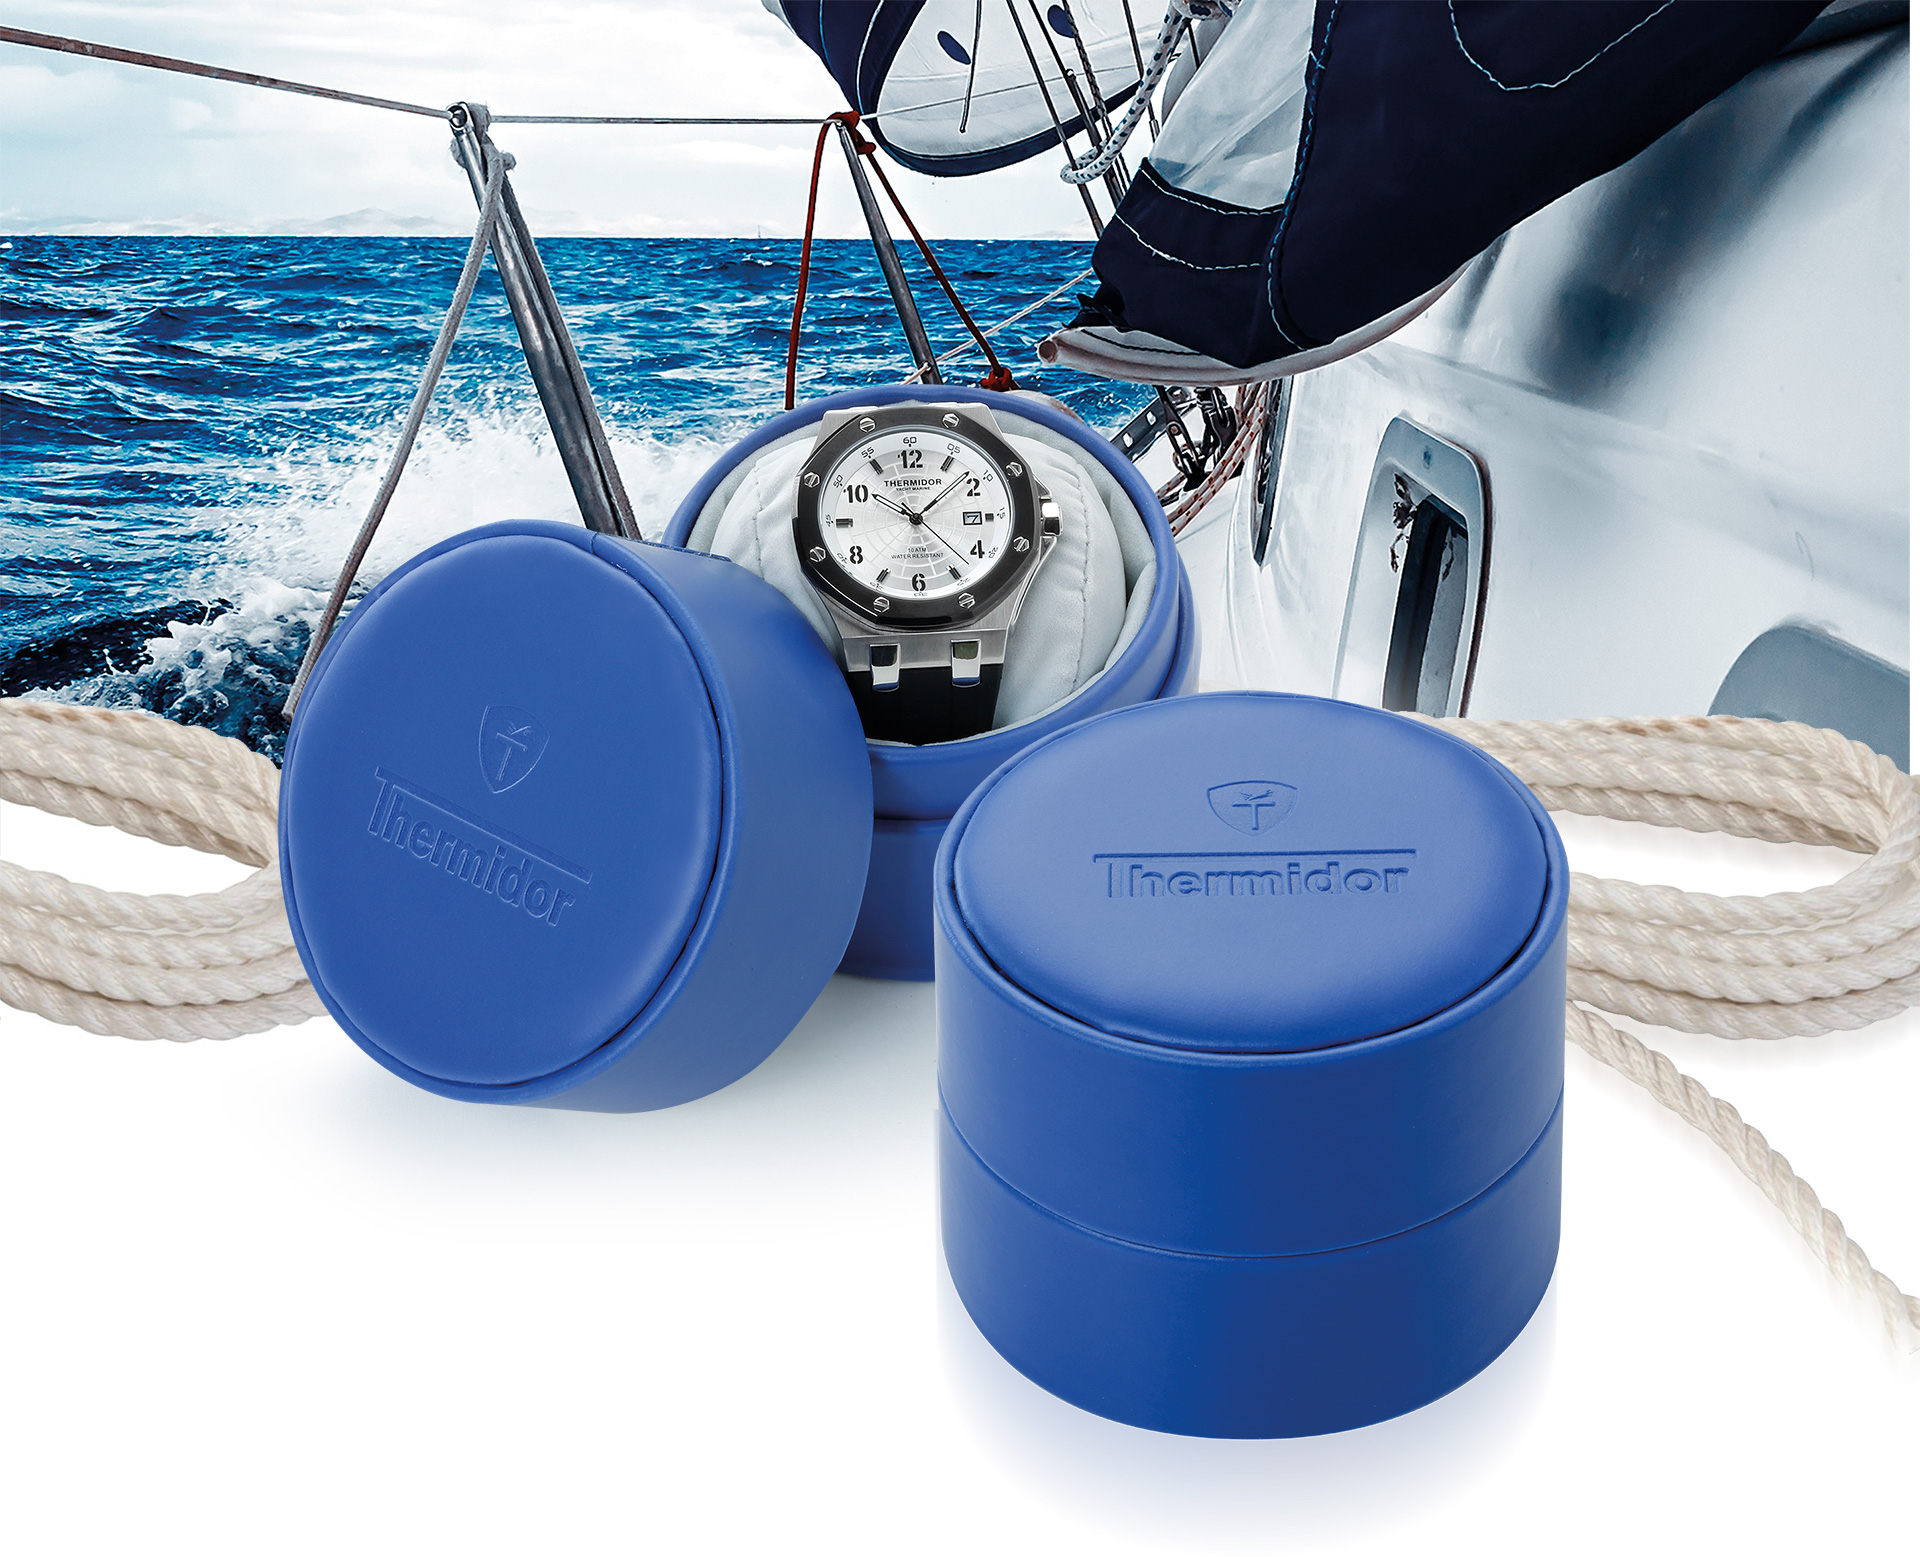 PRODUCTOS LUFTHOUS - RELOJES YACHT MARINE - LUFTHOUS - RELOJES - THERMIDOR